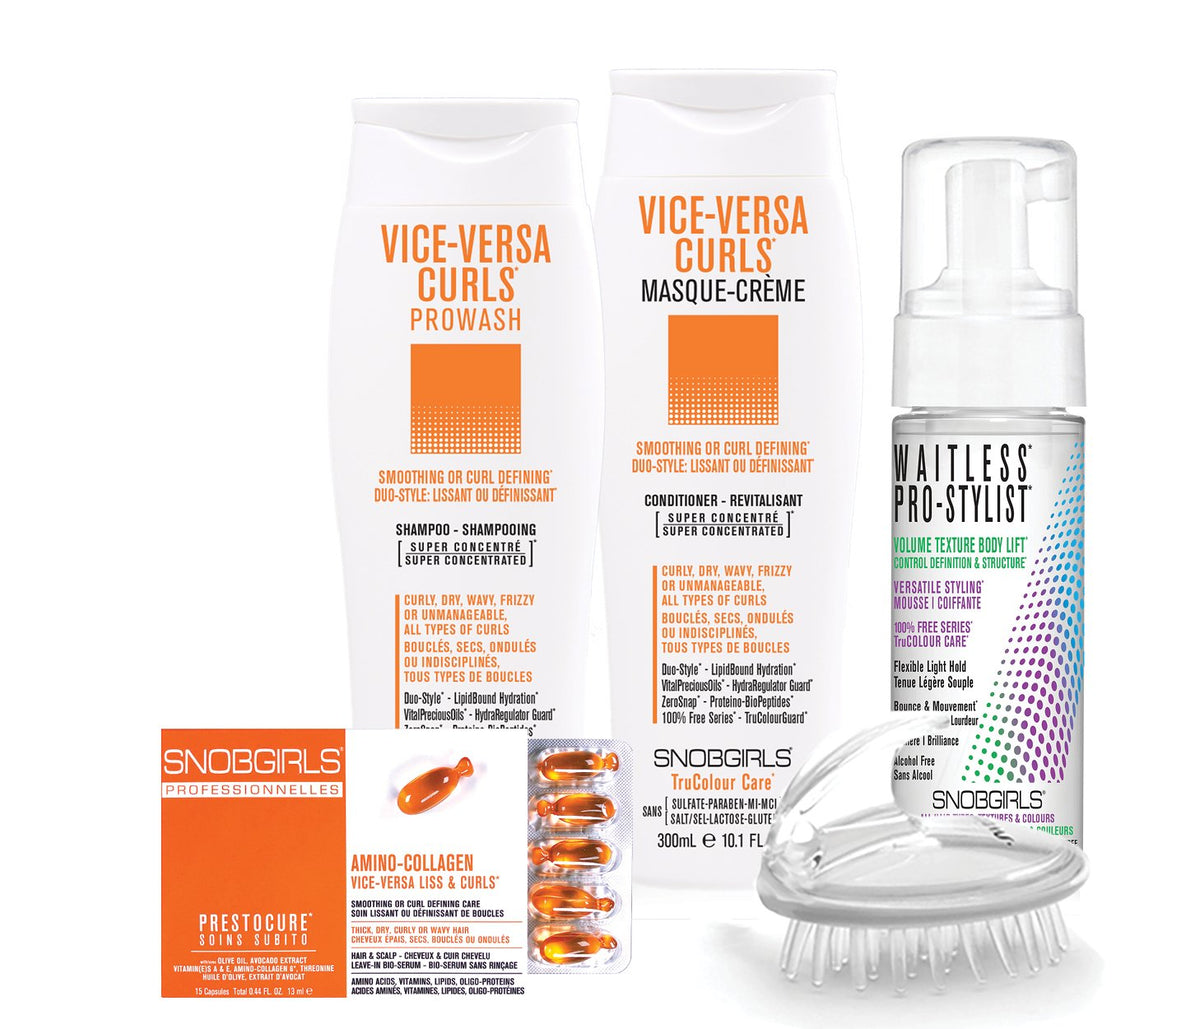 VICE-VERSA CURLS BOX DUO-STYLE: SMOOTHING OR CURL DEFINING Bundle - SNOBGIRLS Canada